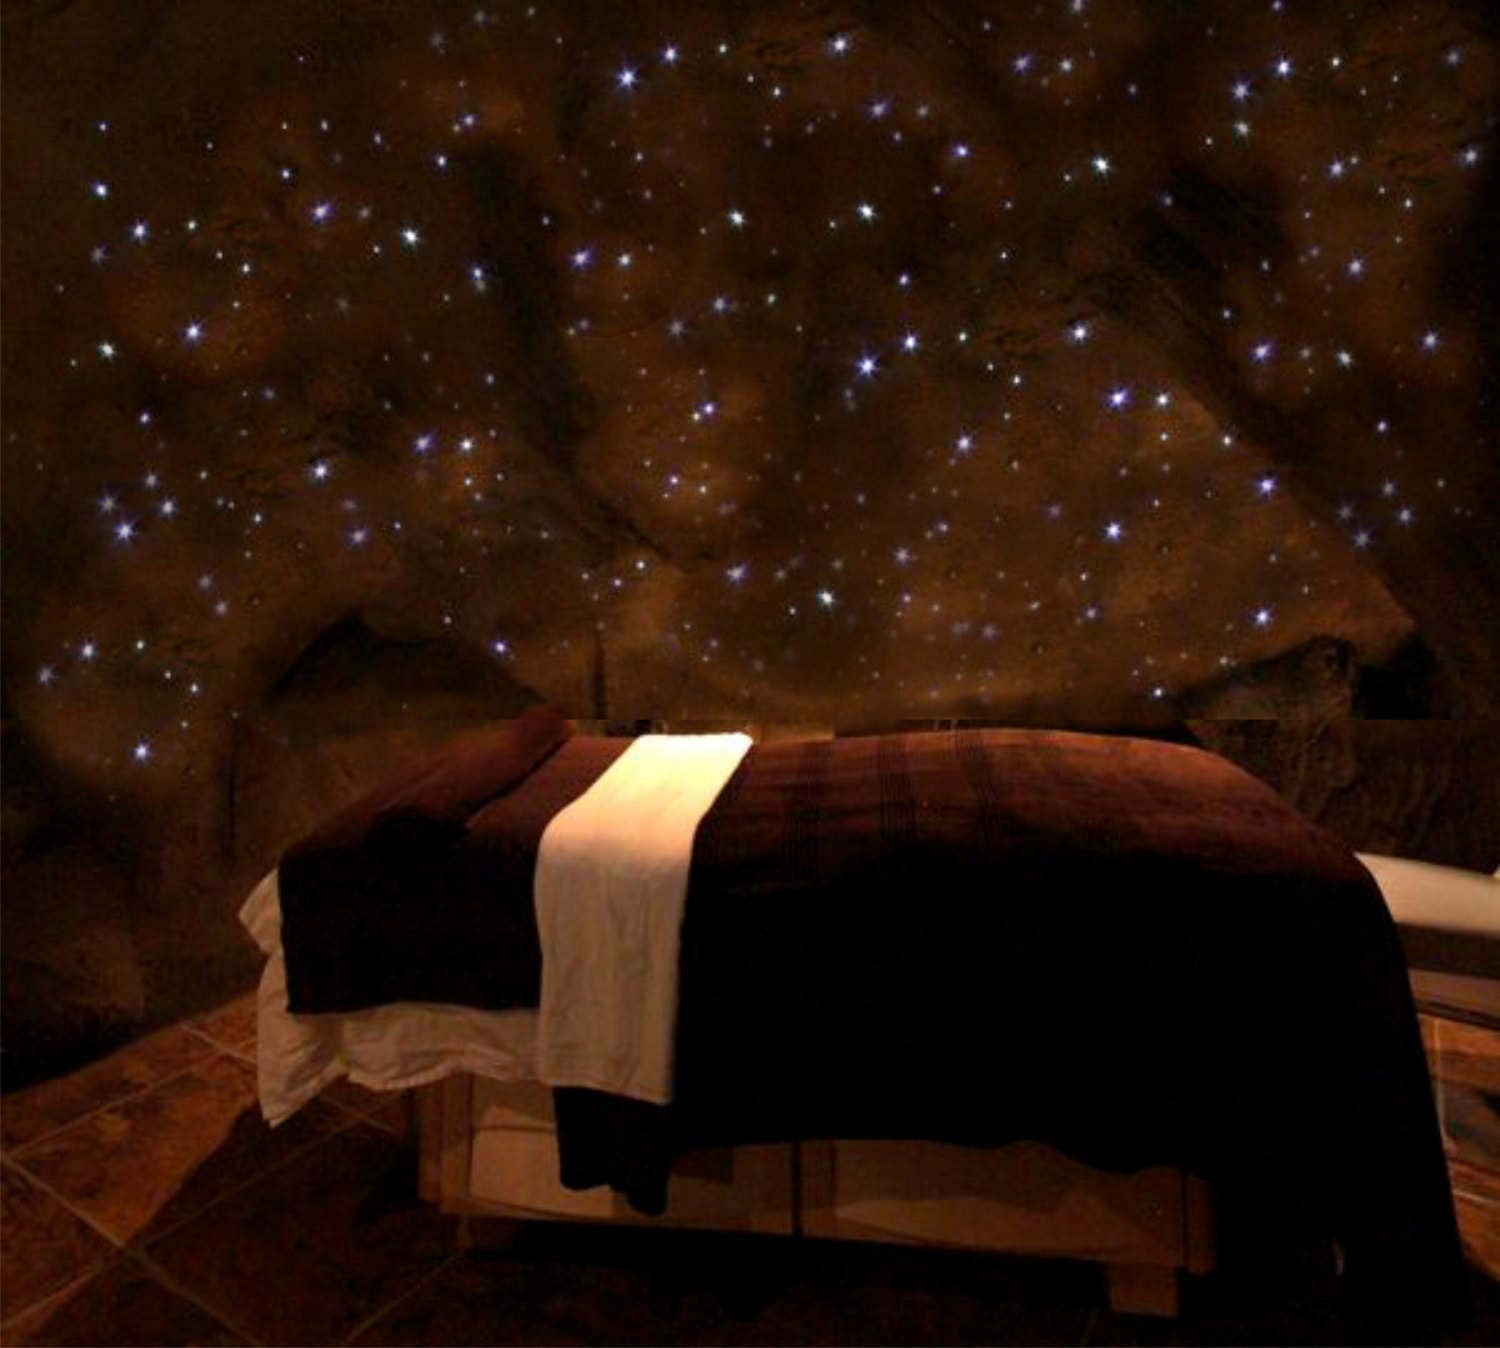 relaxing massage decor glow in the dark stars romantic wall etsy rh etsy com massage room decorating feng shui massage room decor for sale